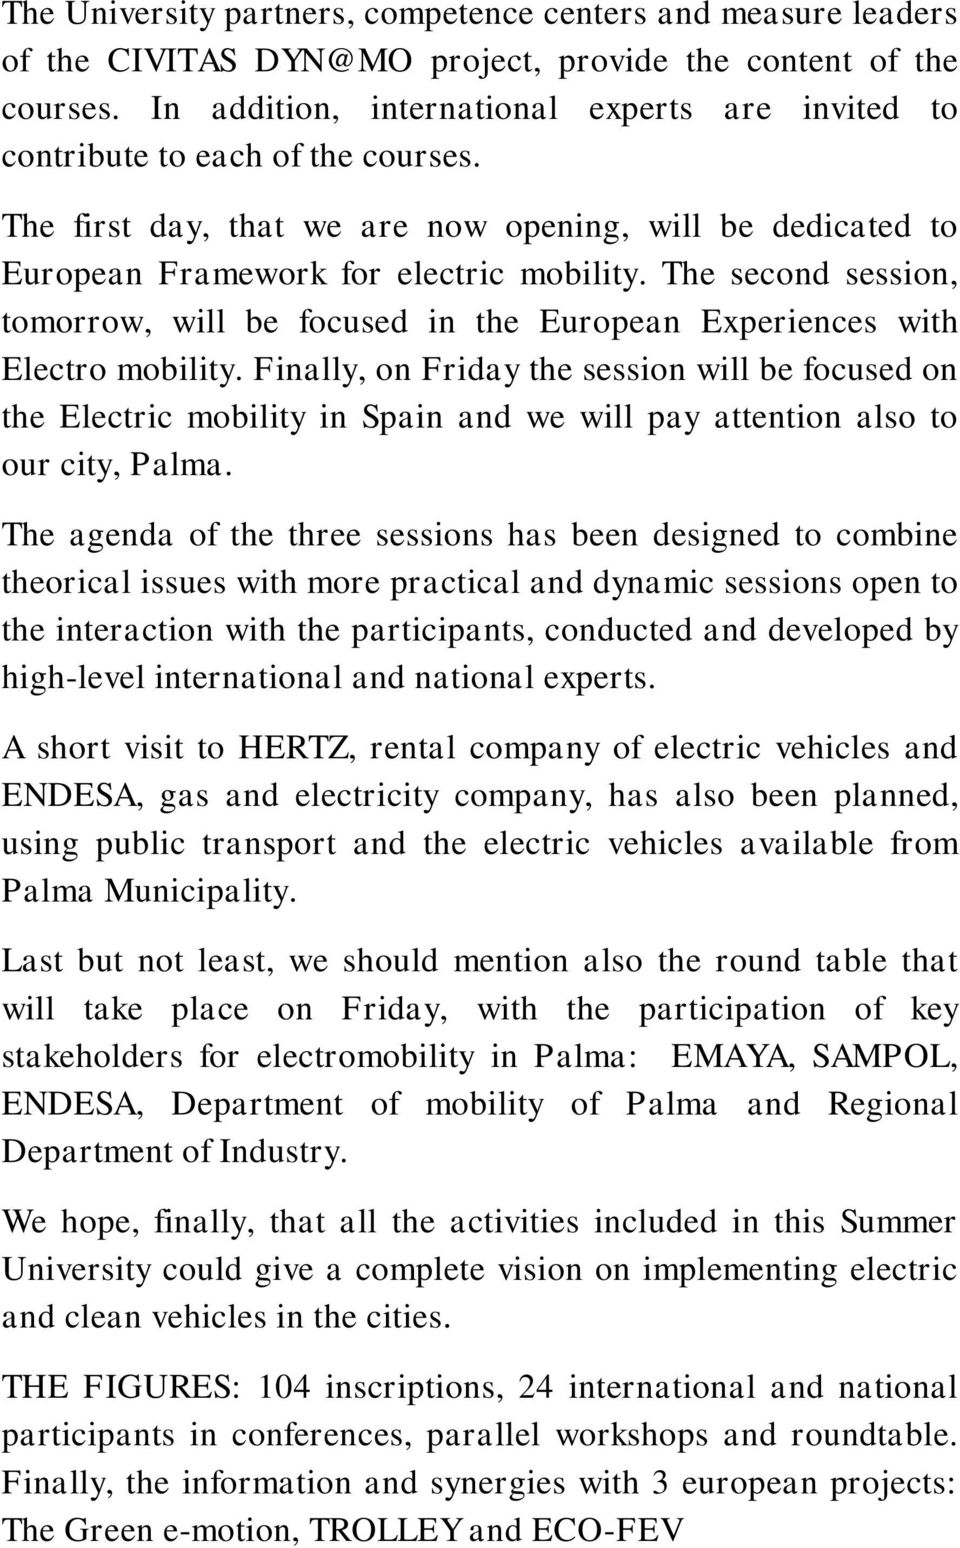 The second session, tomorrow, will be focused in the European Experiences with Electro mobility.